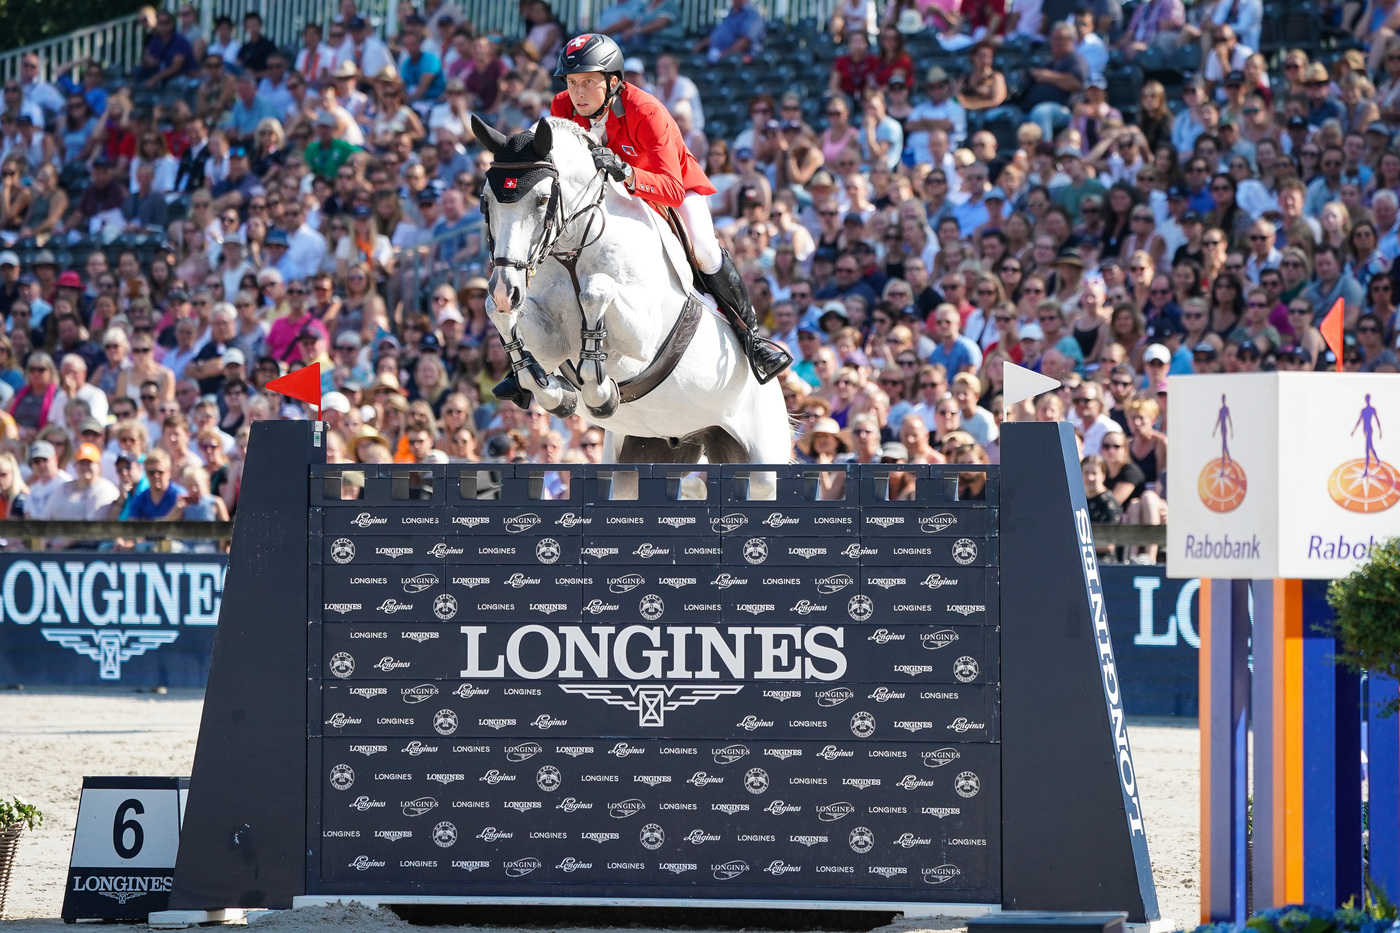 Longines Show Jumping Event: One week of captivating competitions and exceptional performances at the Longines FEI European Championships 2019 12